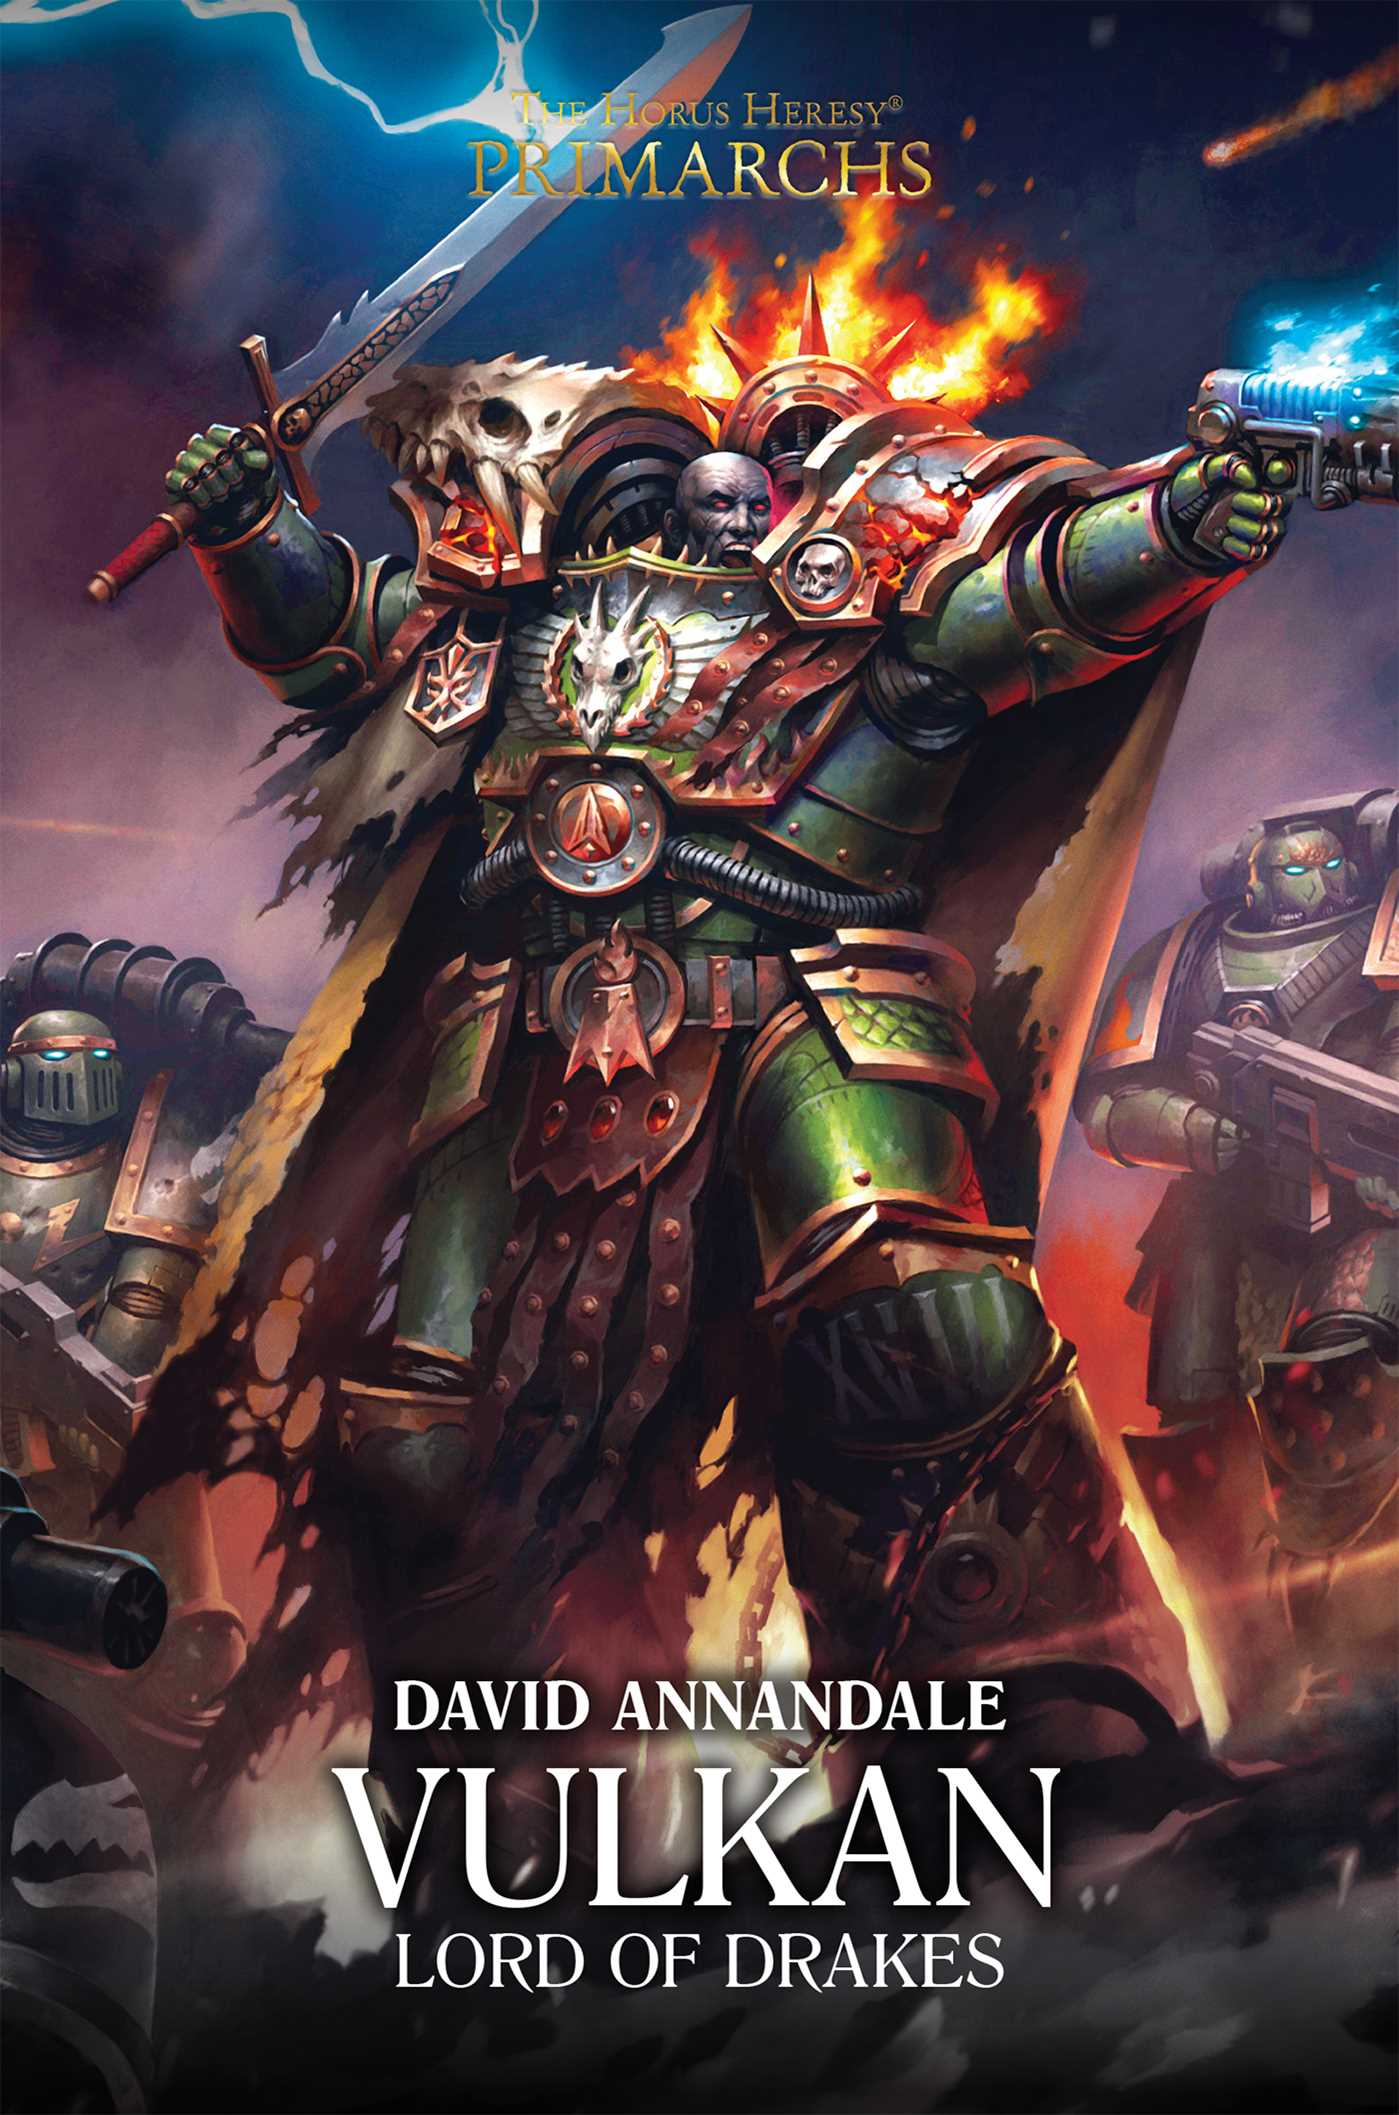 Vulkan: Lord of Drakes   Book by David Annandale   Official